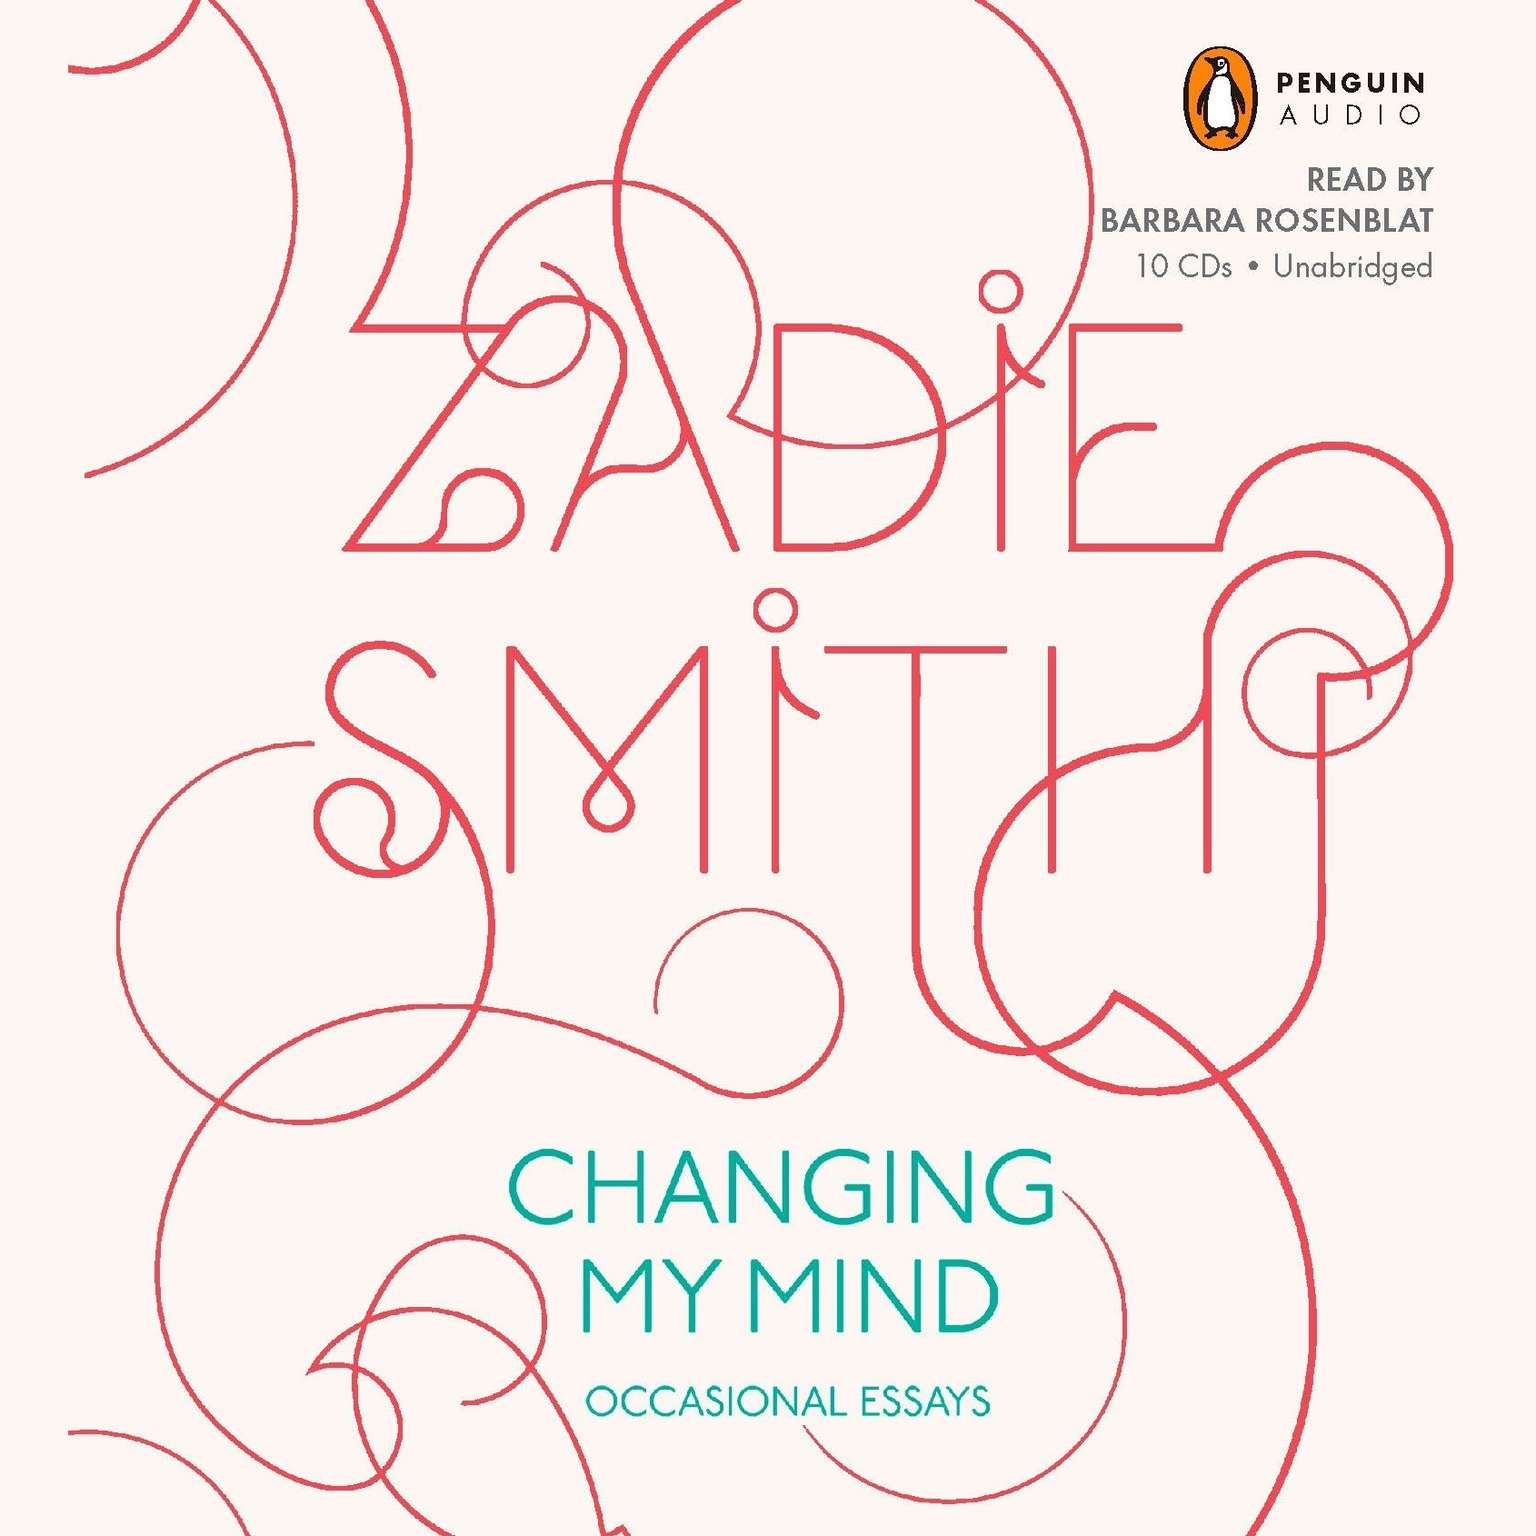 002 Changing My Mind Occasional Essays Amoe Square Essay Striking Pdf By Zadie Smith Full